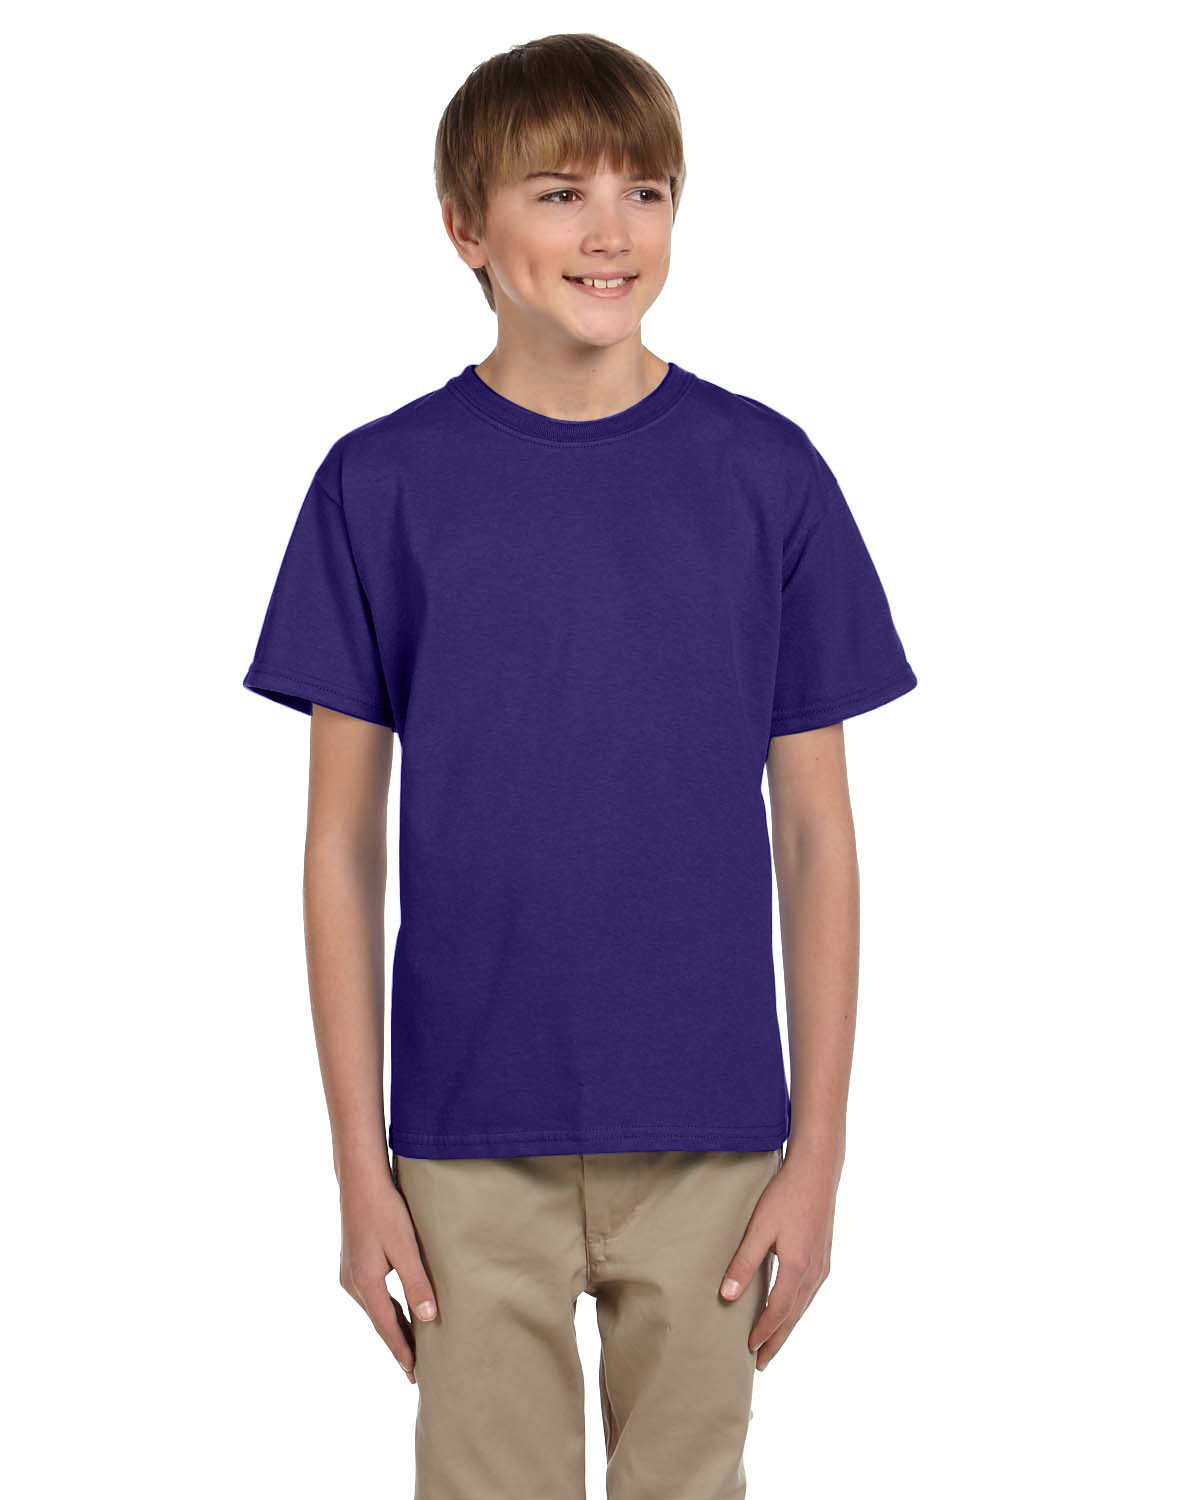 Fruit of the Loom Youth HD Cotton™ T-Shirt DEEP PURPLE